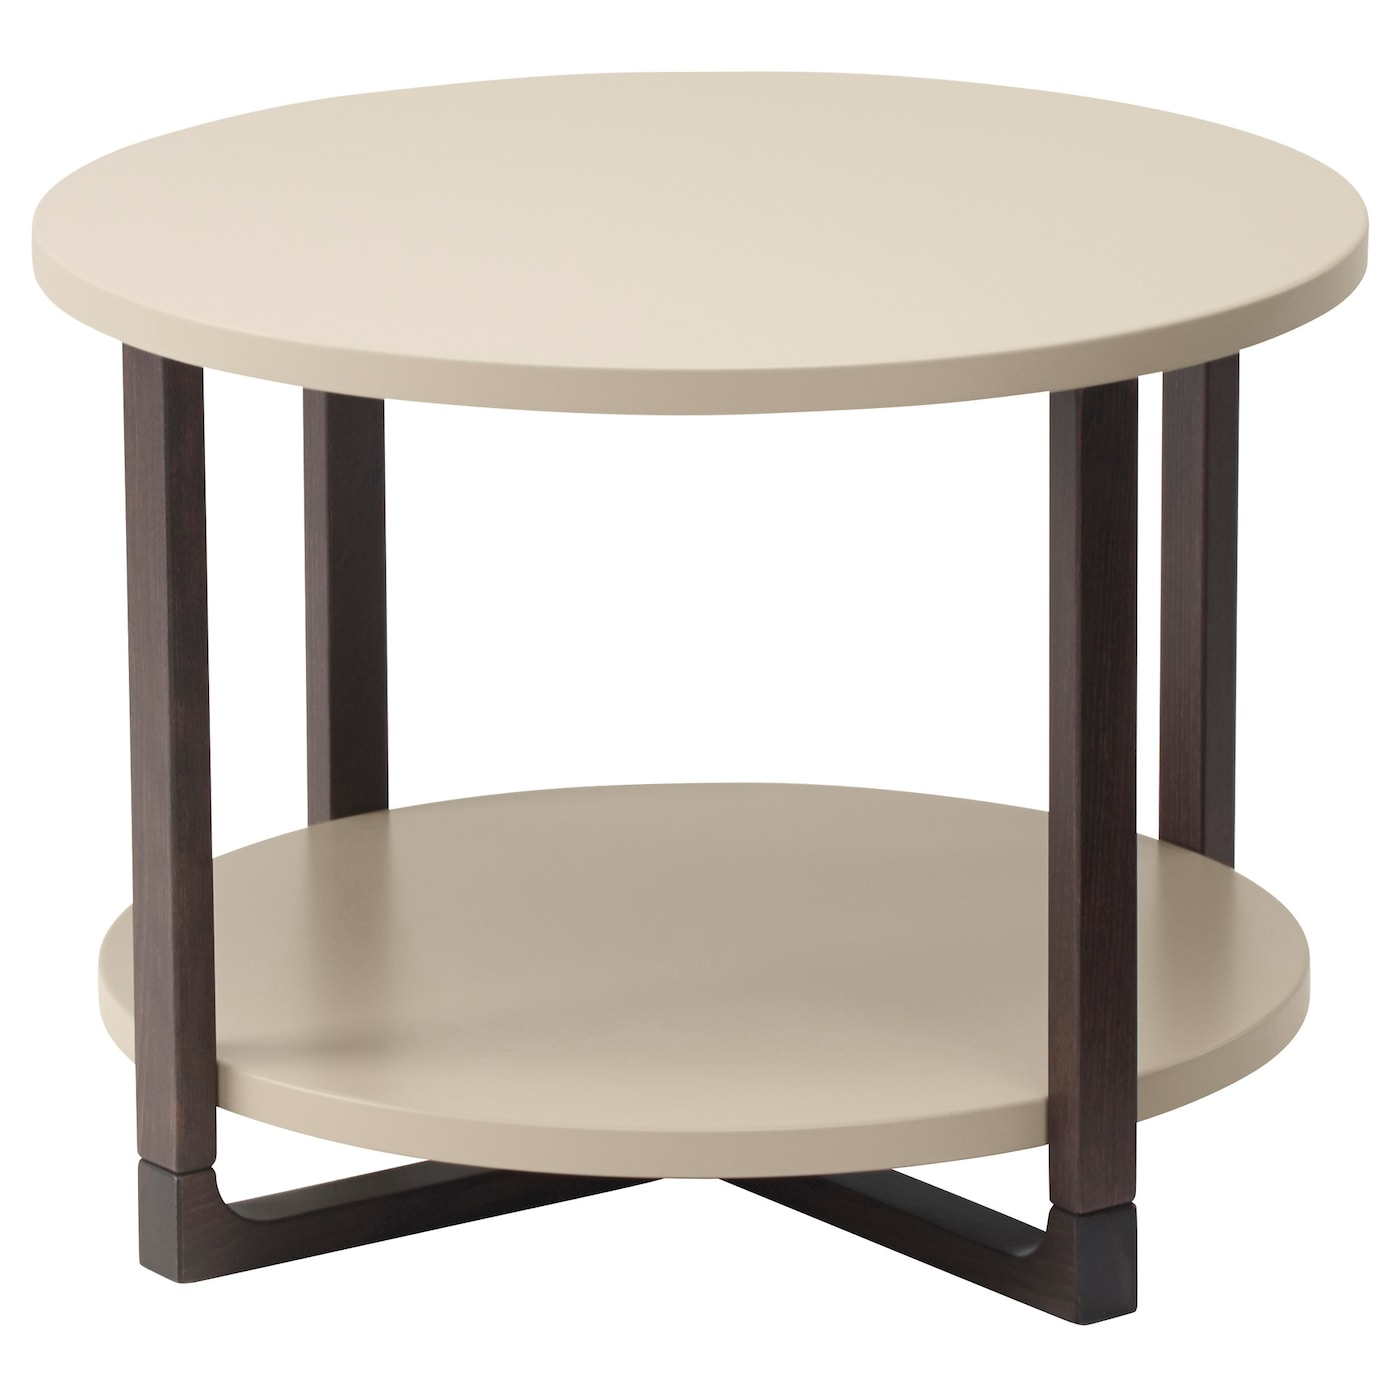 Rissna side table beige 60 cm ikea - Petite table basse ronde ...